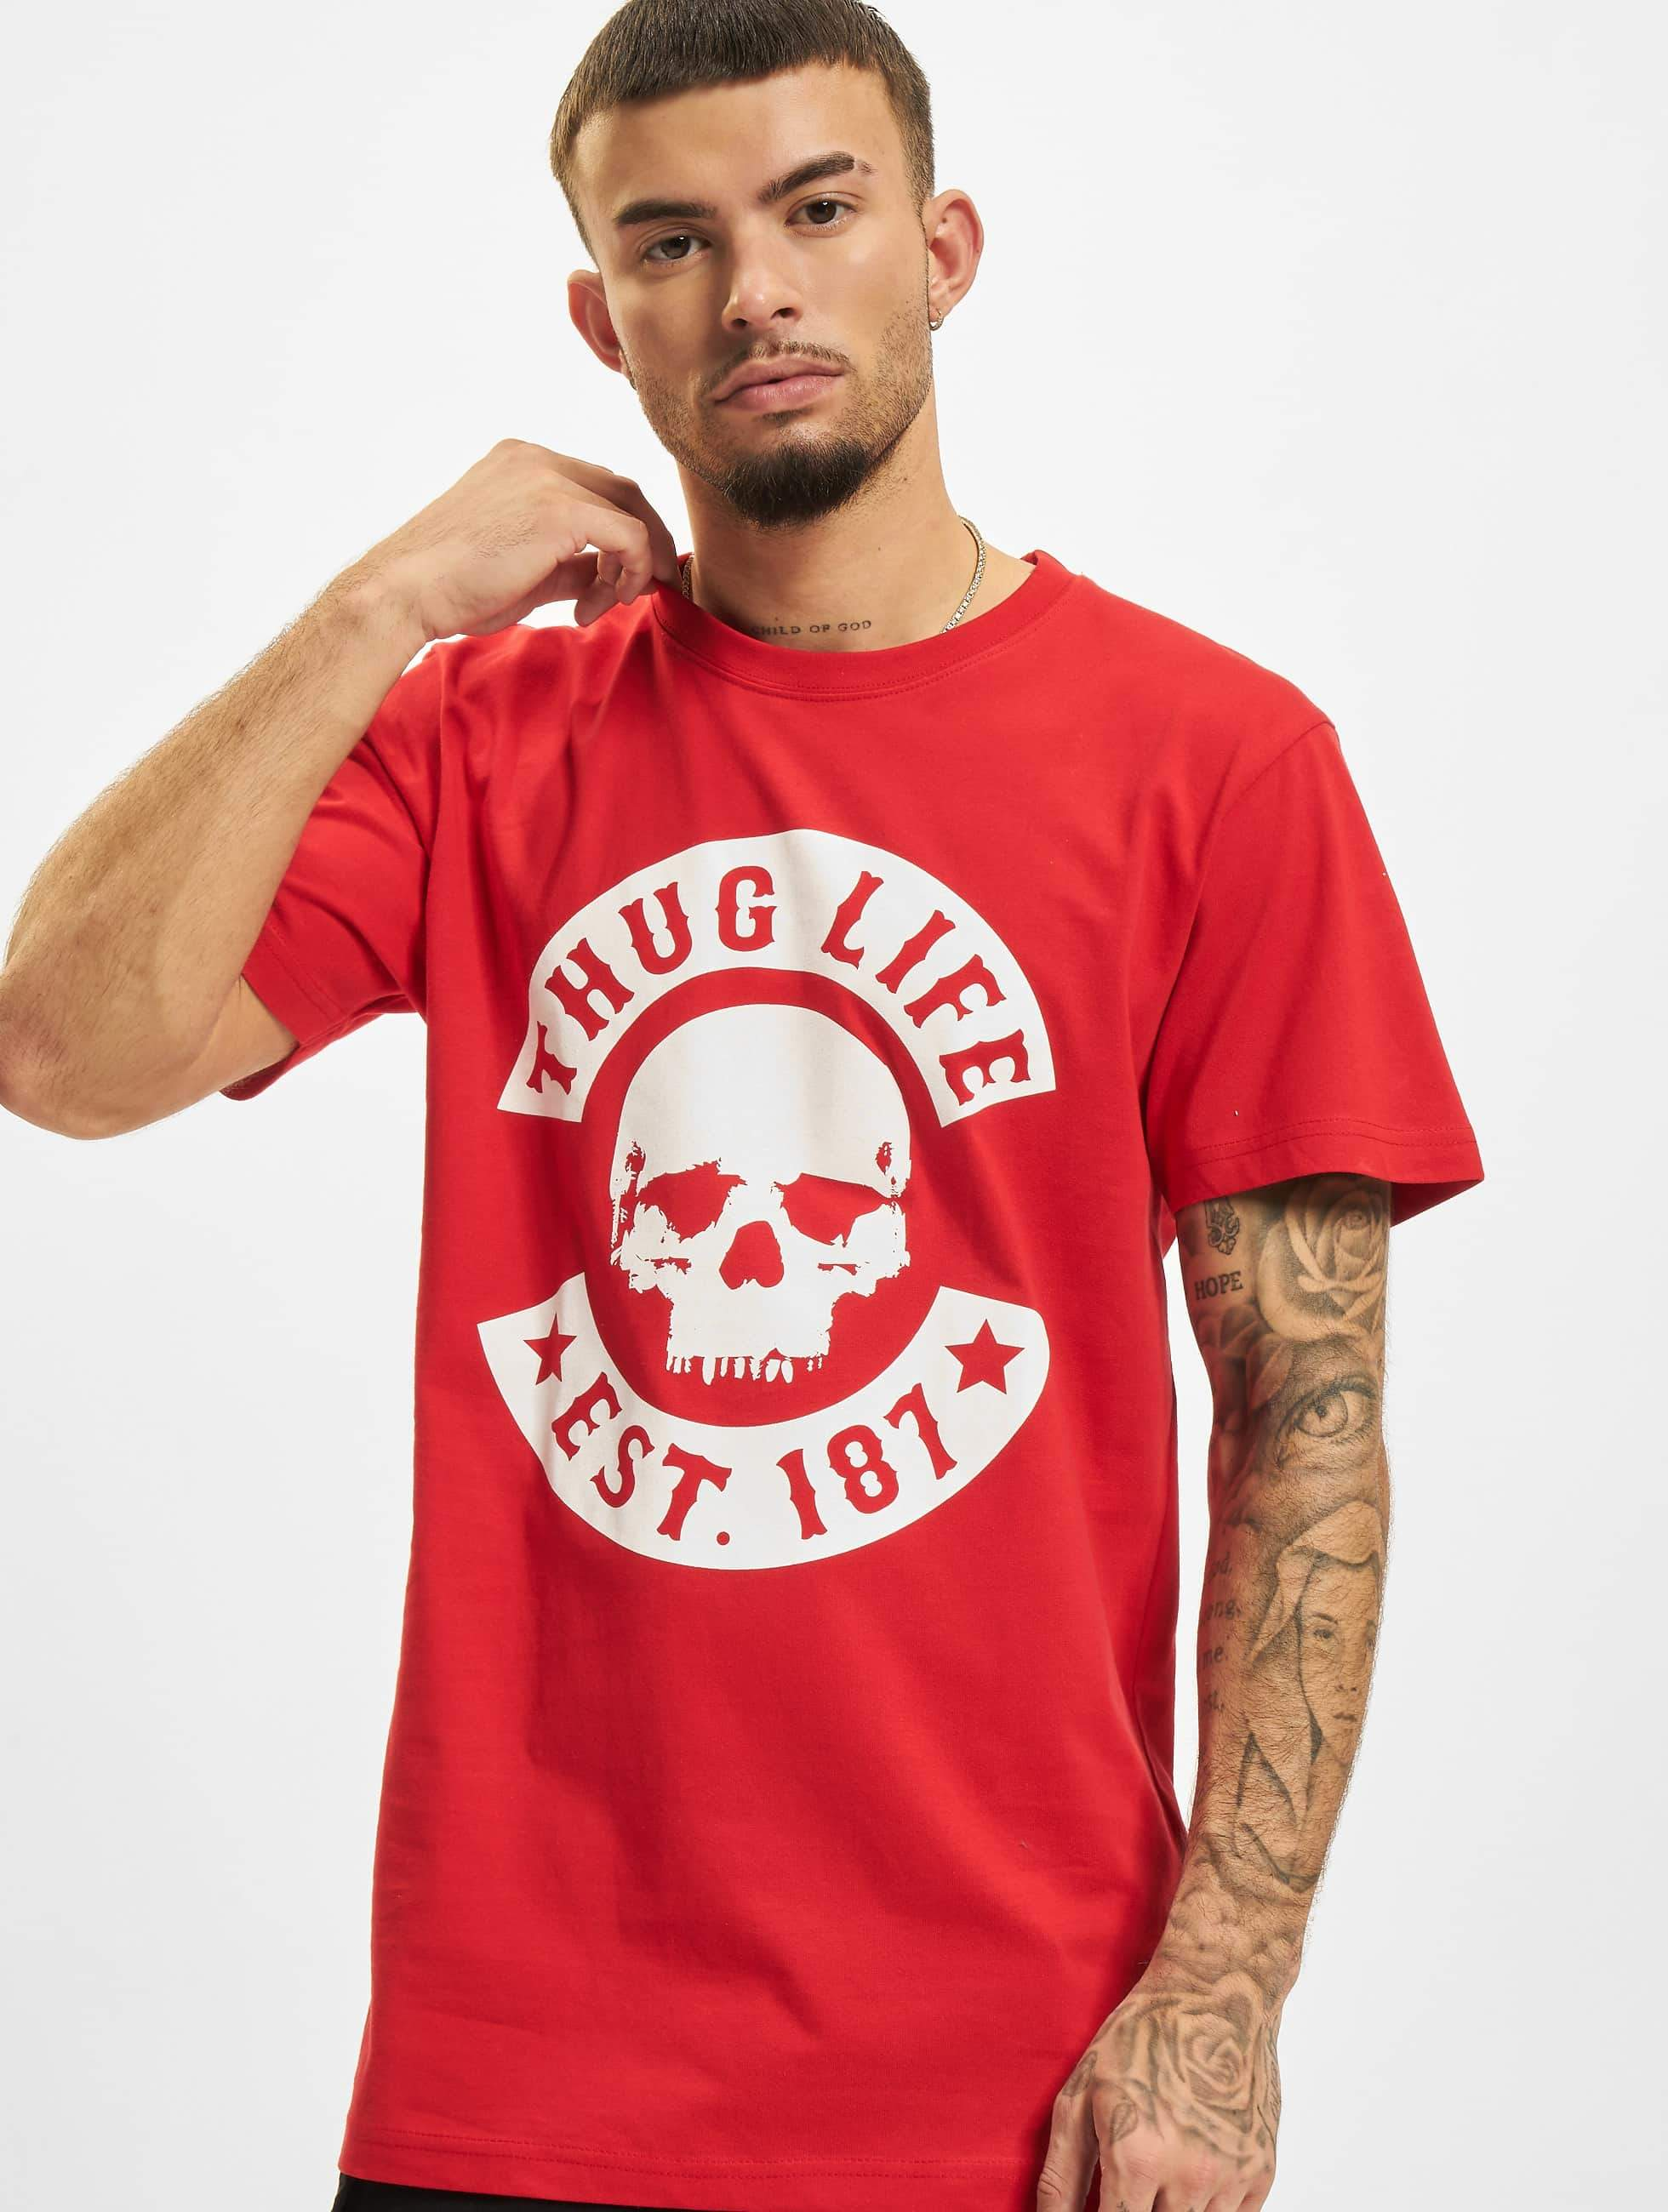 Thug Life / T-Shirt B.Skull in red 2XL